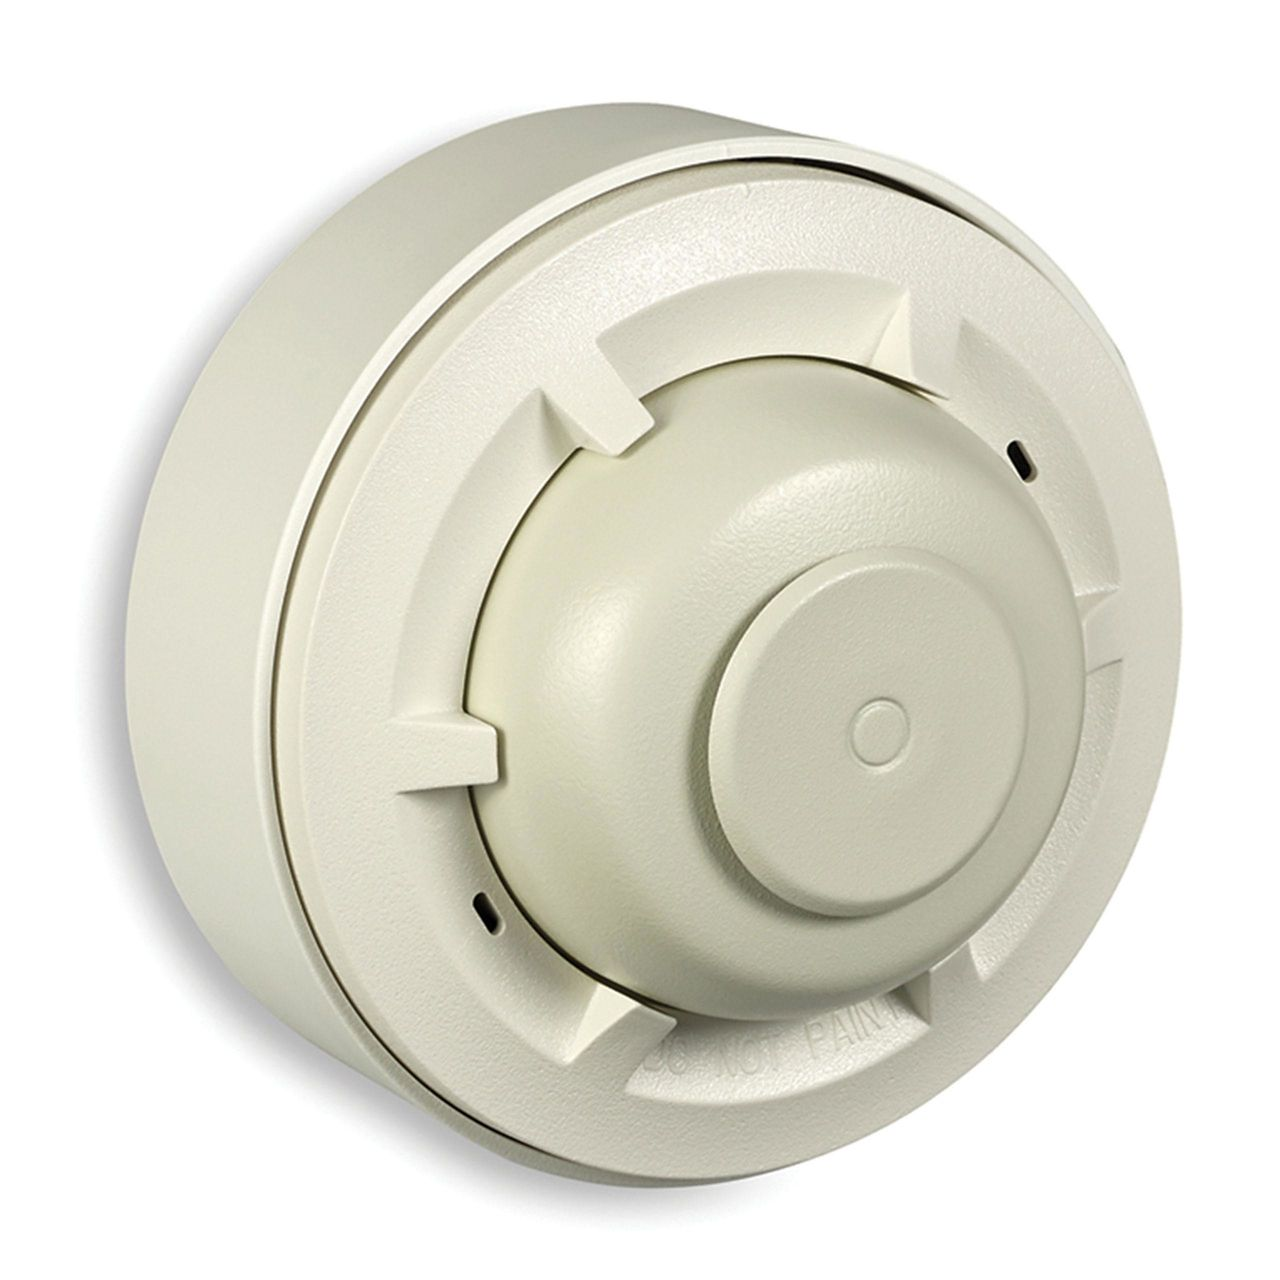 5809 Wireless Fixed Heat and Rate-of-Rise Detector